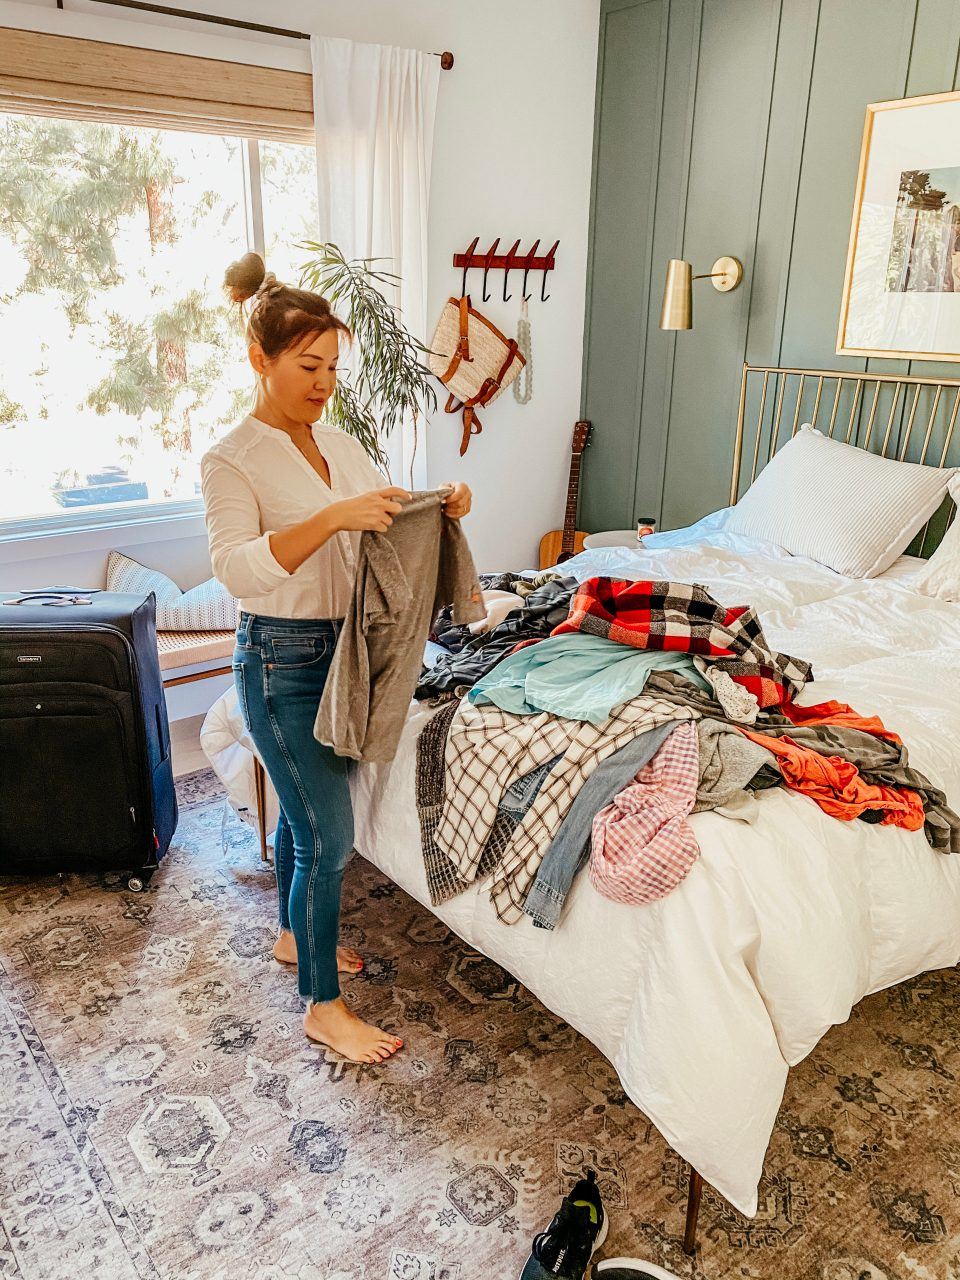 Anita sorts through a pile of clothes in the bedroom